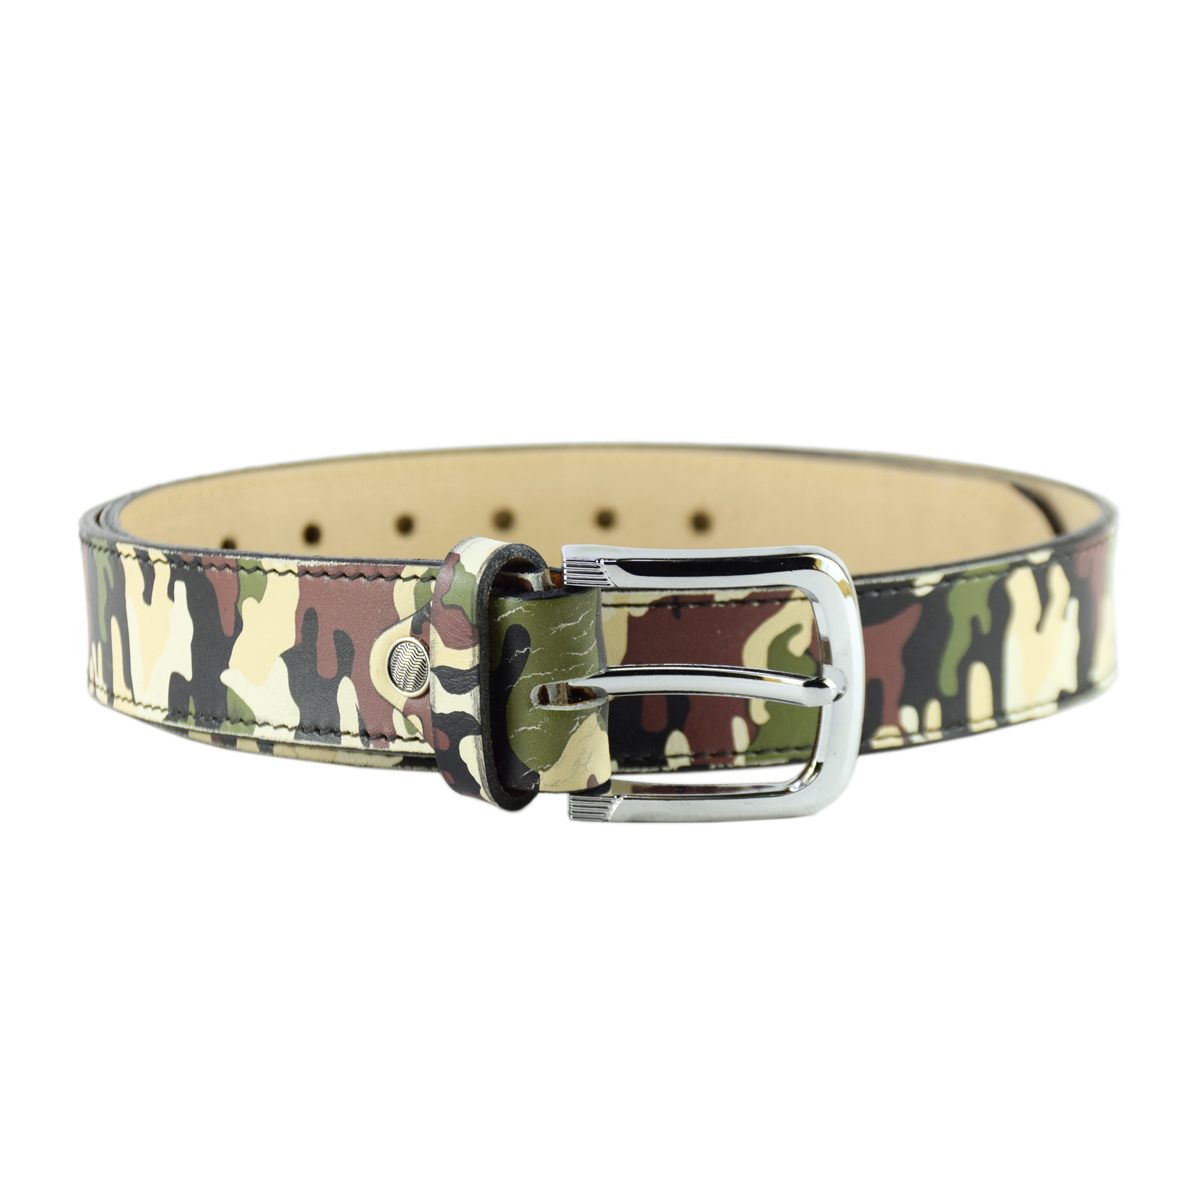 Casual Military Camo Leather Belt 1.5""